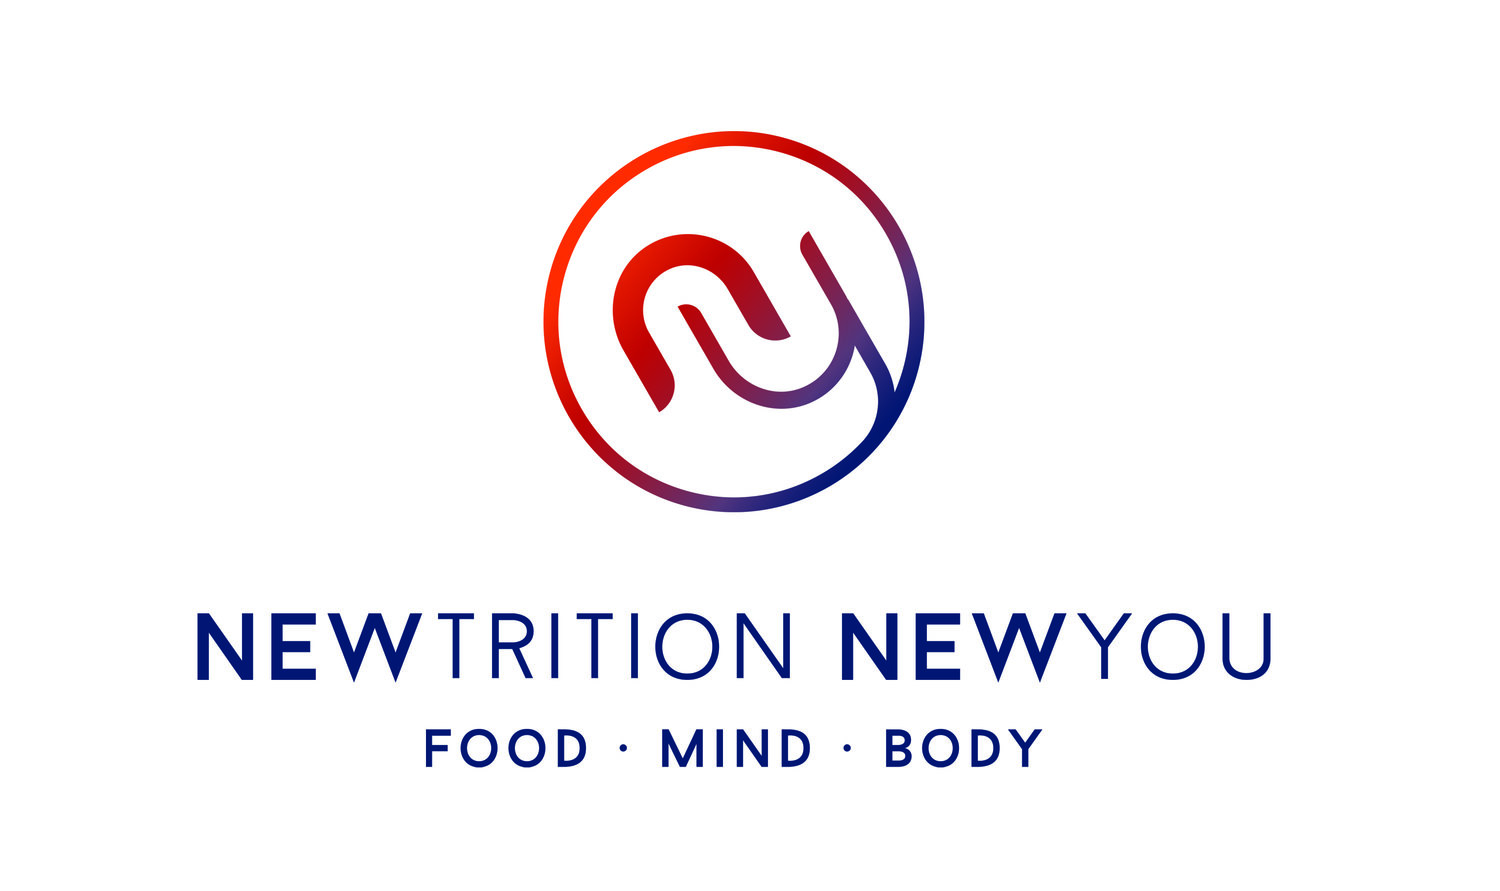 Newtrition New You